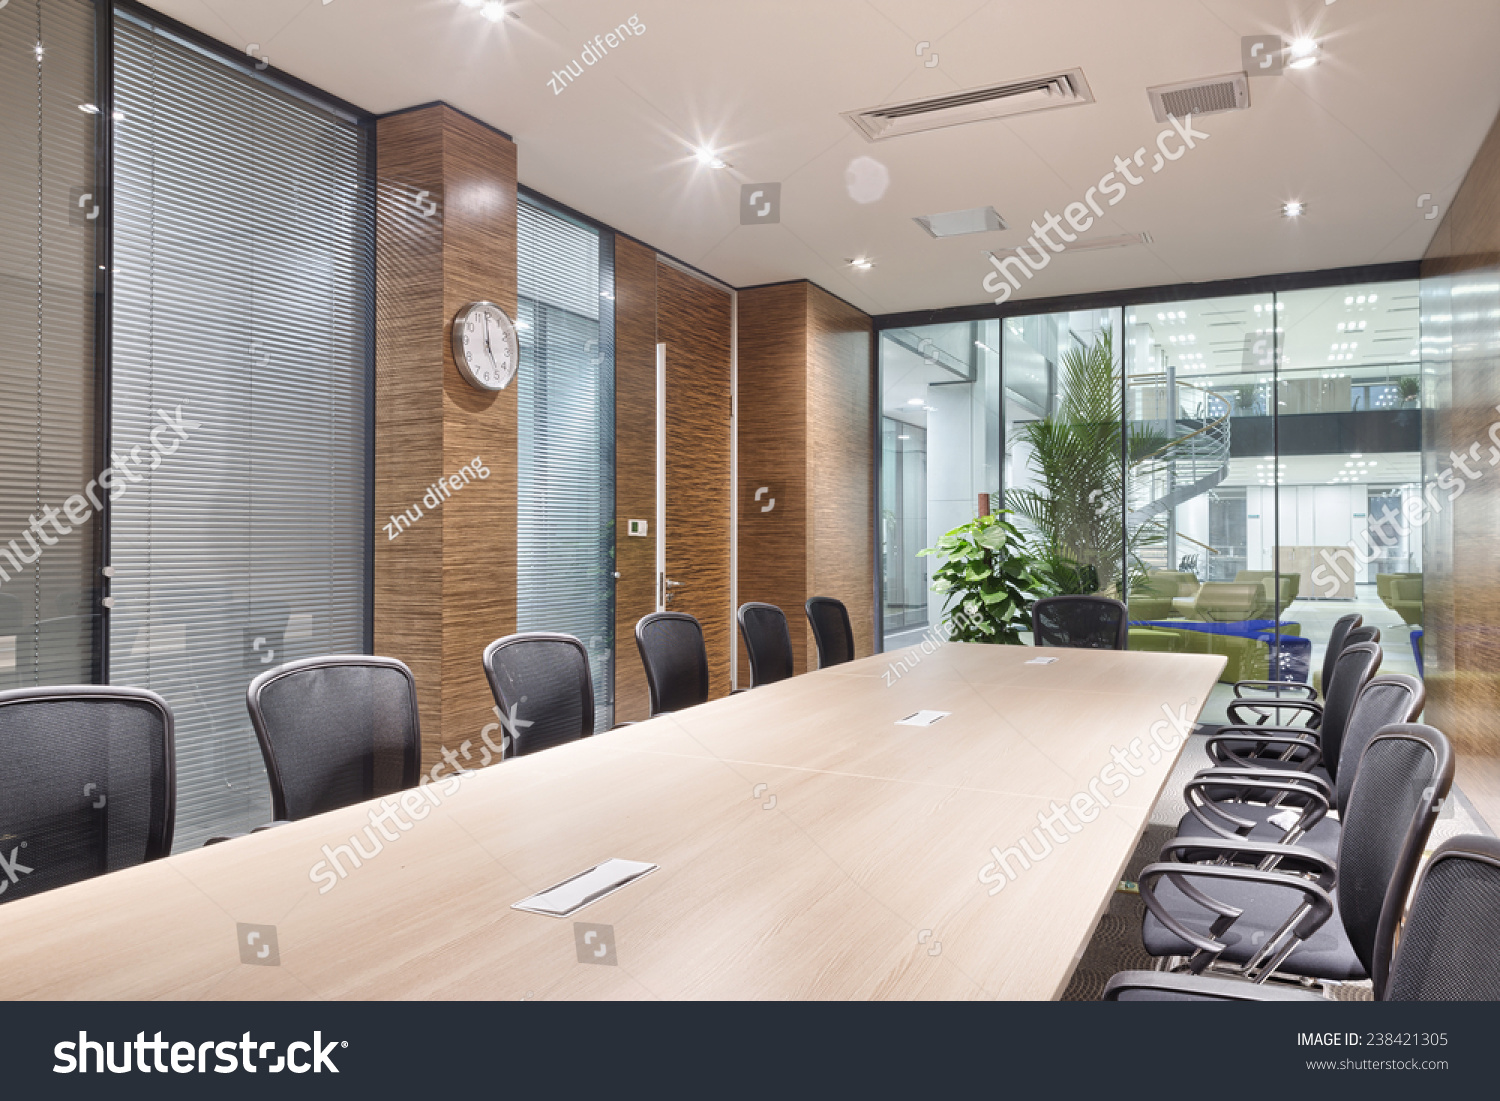 office meeting room design. Modern Office Meeting Room Interior Design N